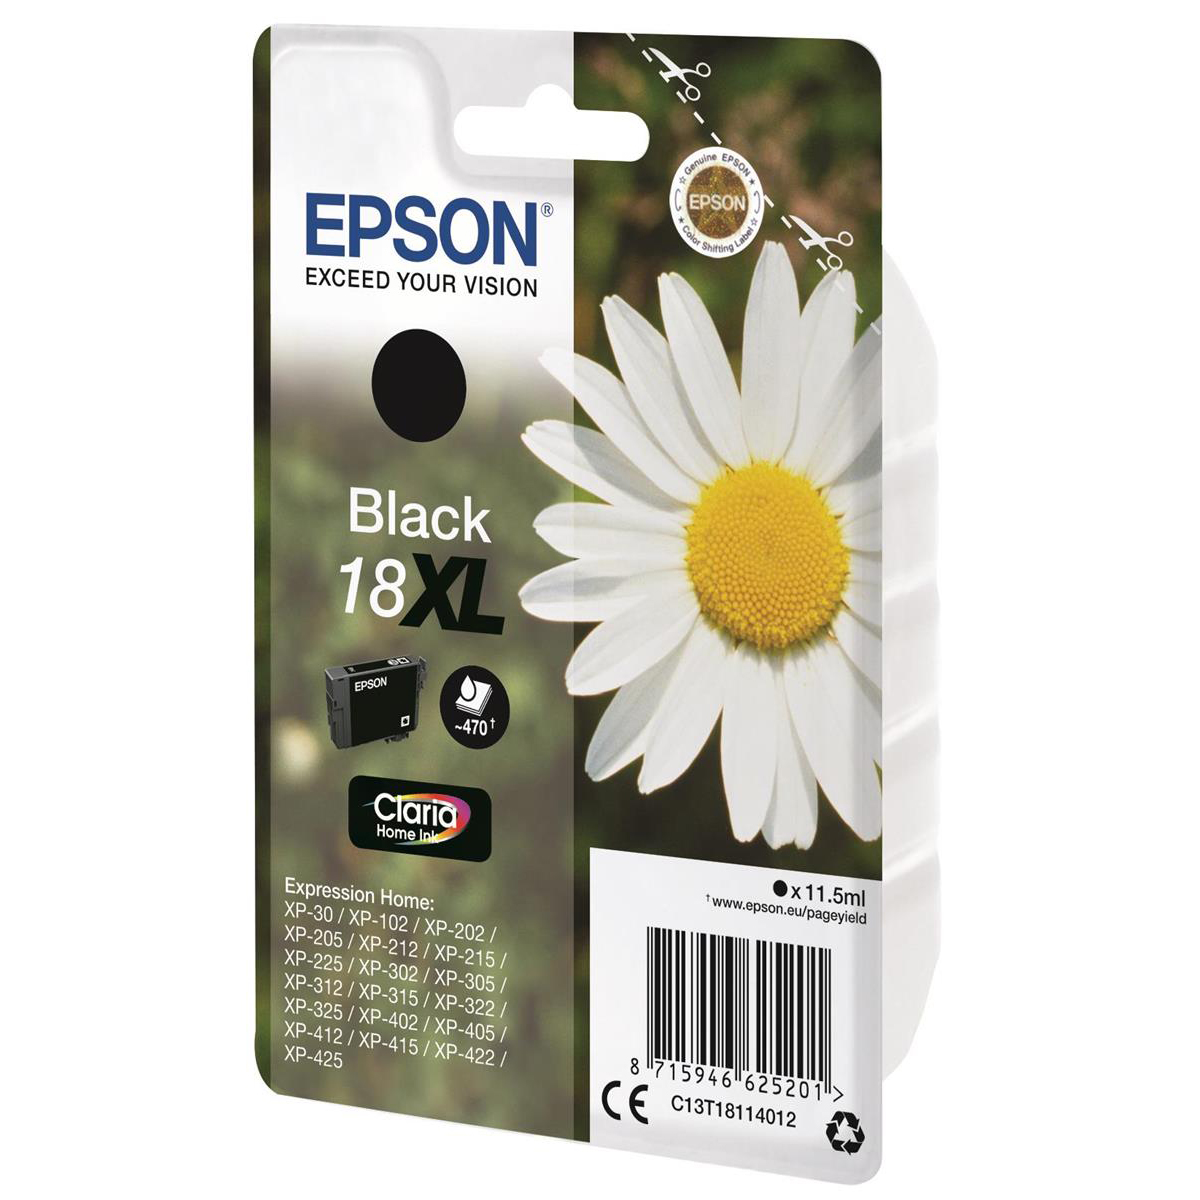 Epson 18XL Inkjet Cartridge Daisy High Yield Page Life 470pp 11.5ml Black Ref C13T18114012